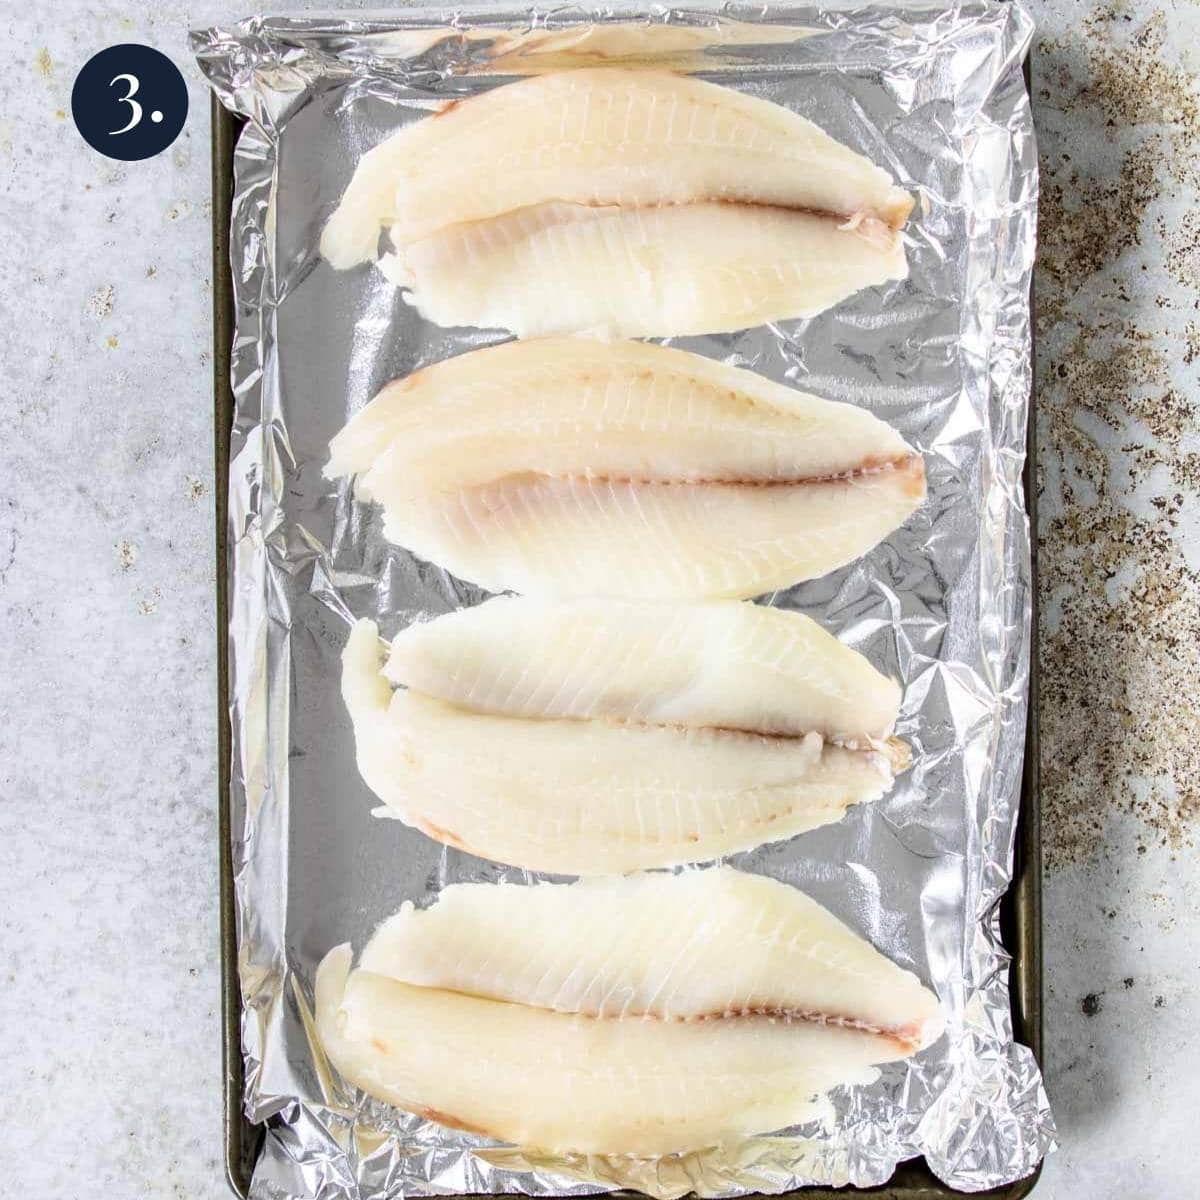 4 fish fillets on a foil lined baking pan